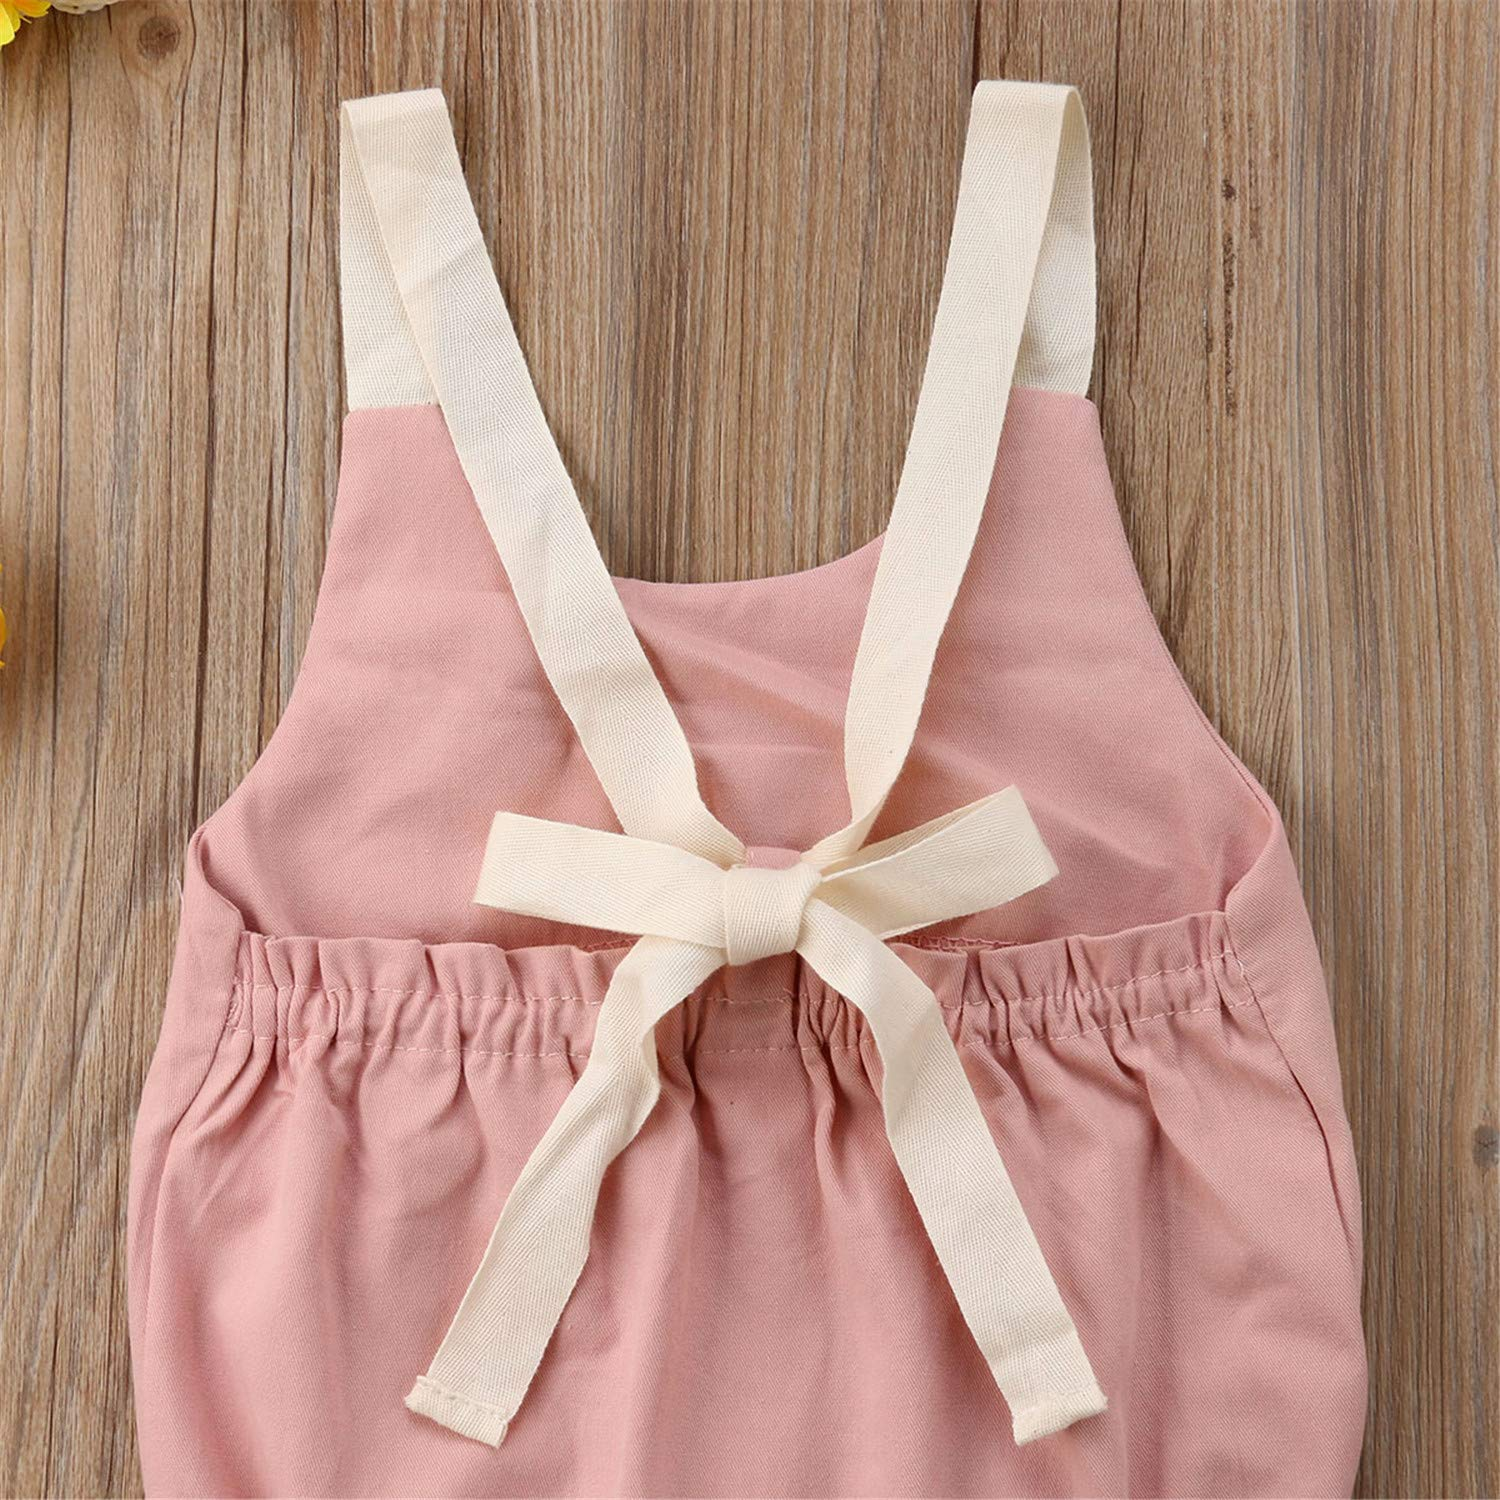 Giles Abbot Toddler Baby Girls Boys Summer Cute Romper Sleeveless Solid Backless